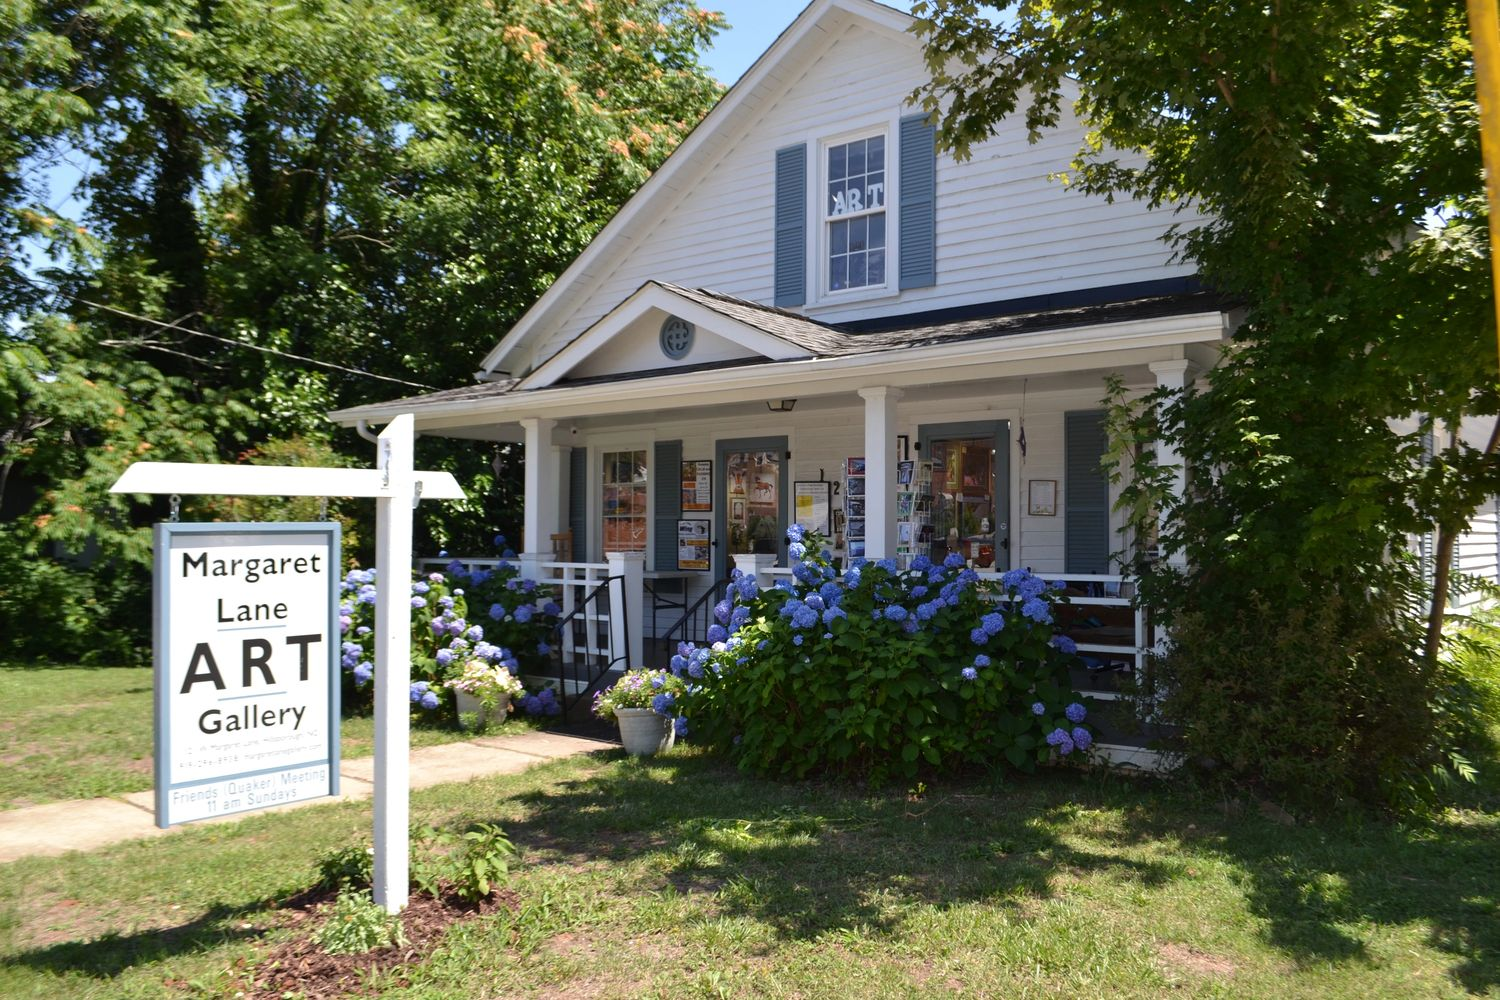 Margaret Lane Gallery, street view, in the spring when the hydrangeas are blooming.